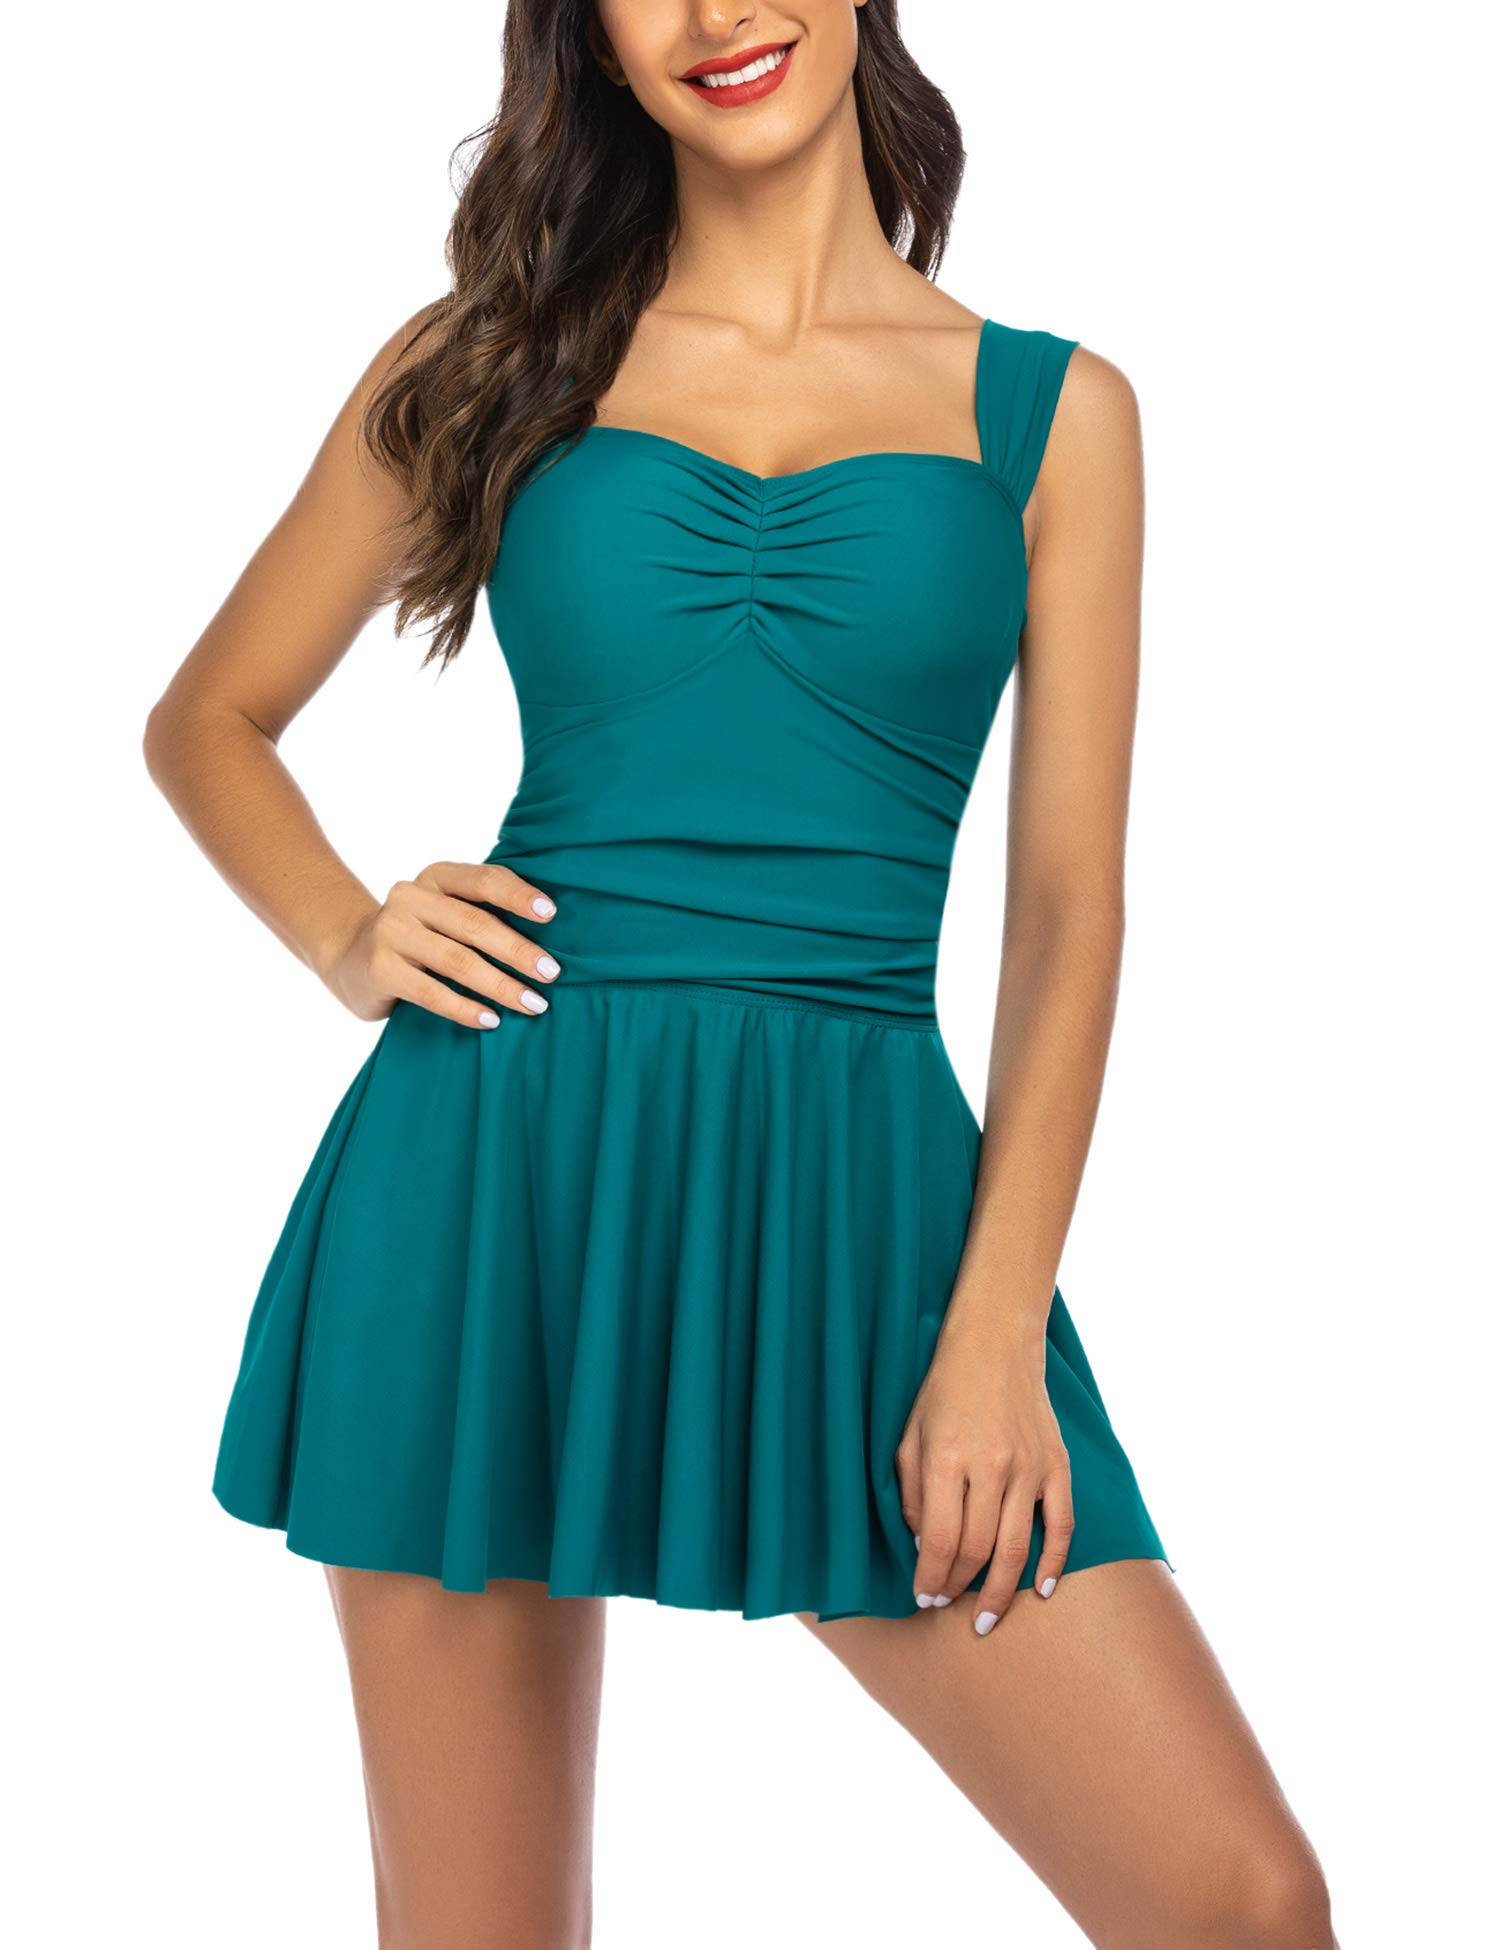 ADOME Swimdress for Women Ruched Swimsuit Tummy Control Swimwear Skirted Bathing Suit